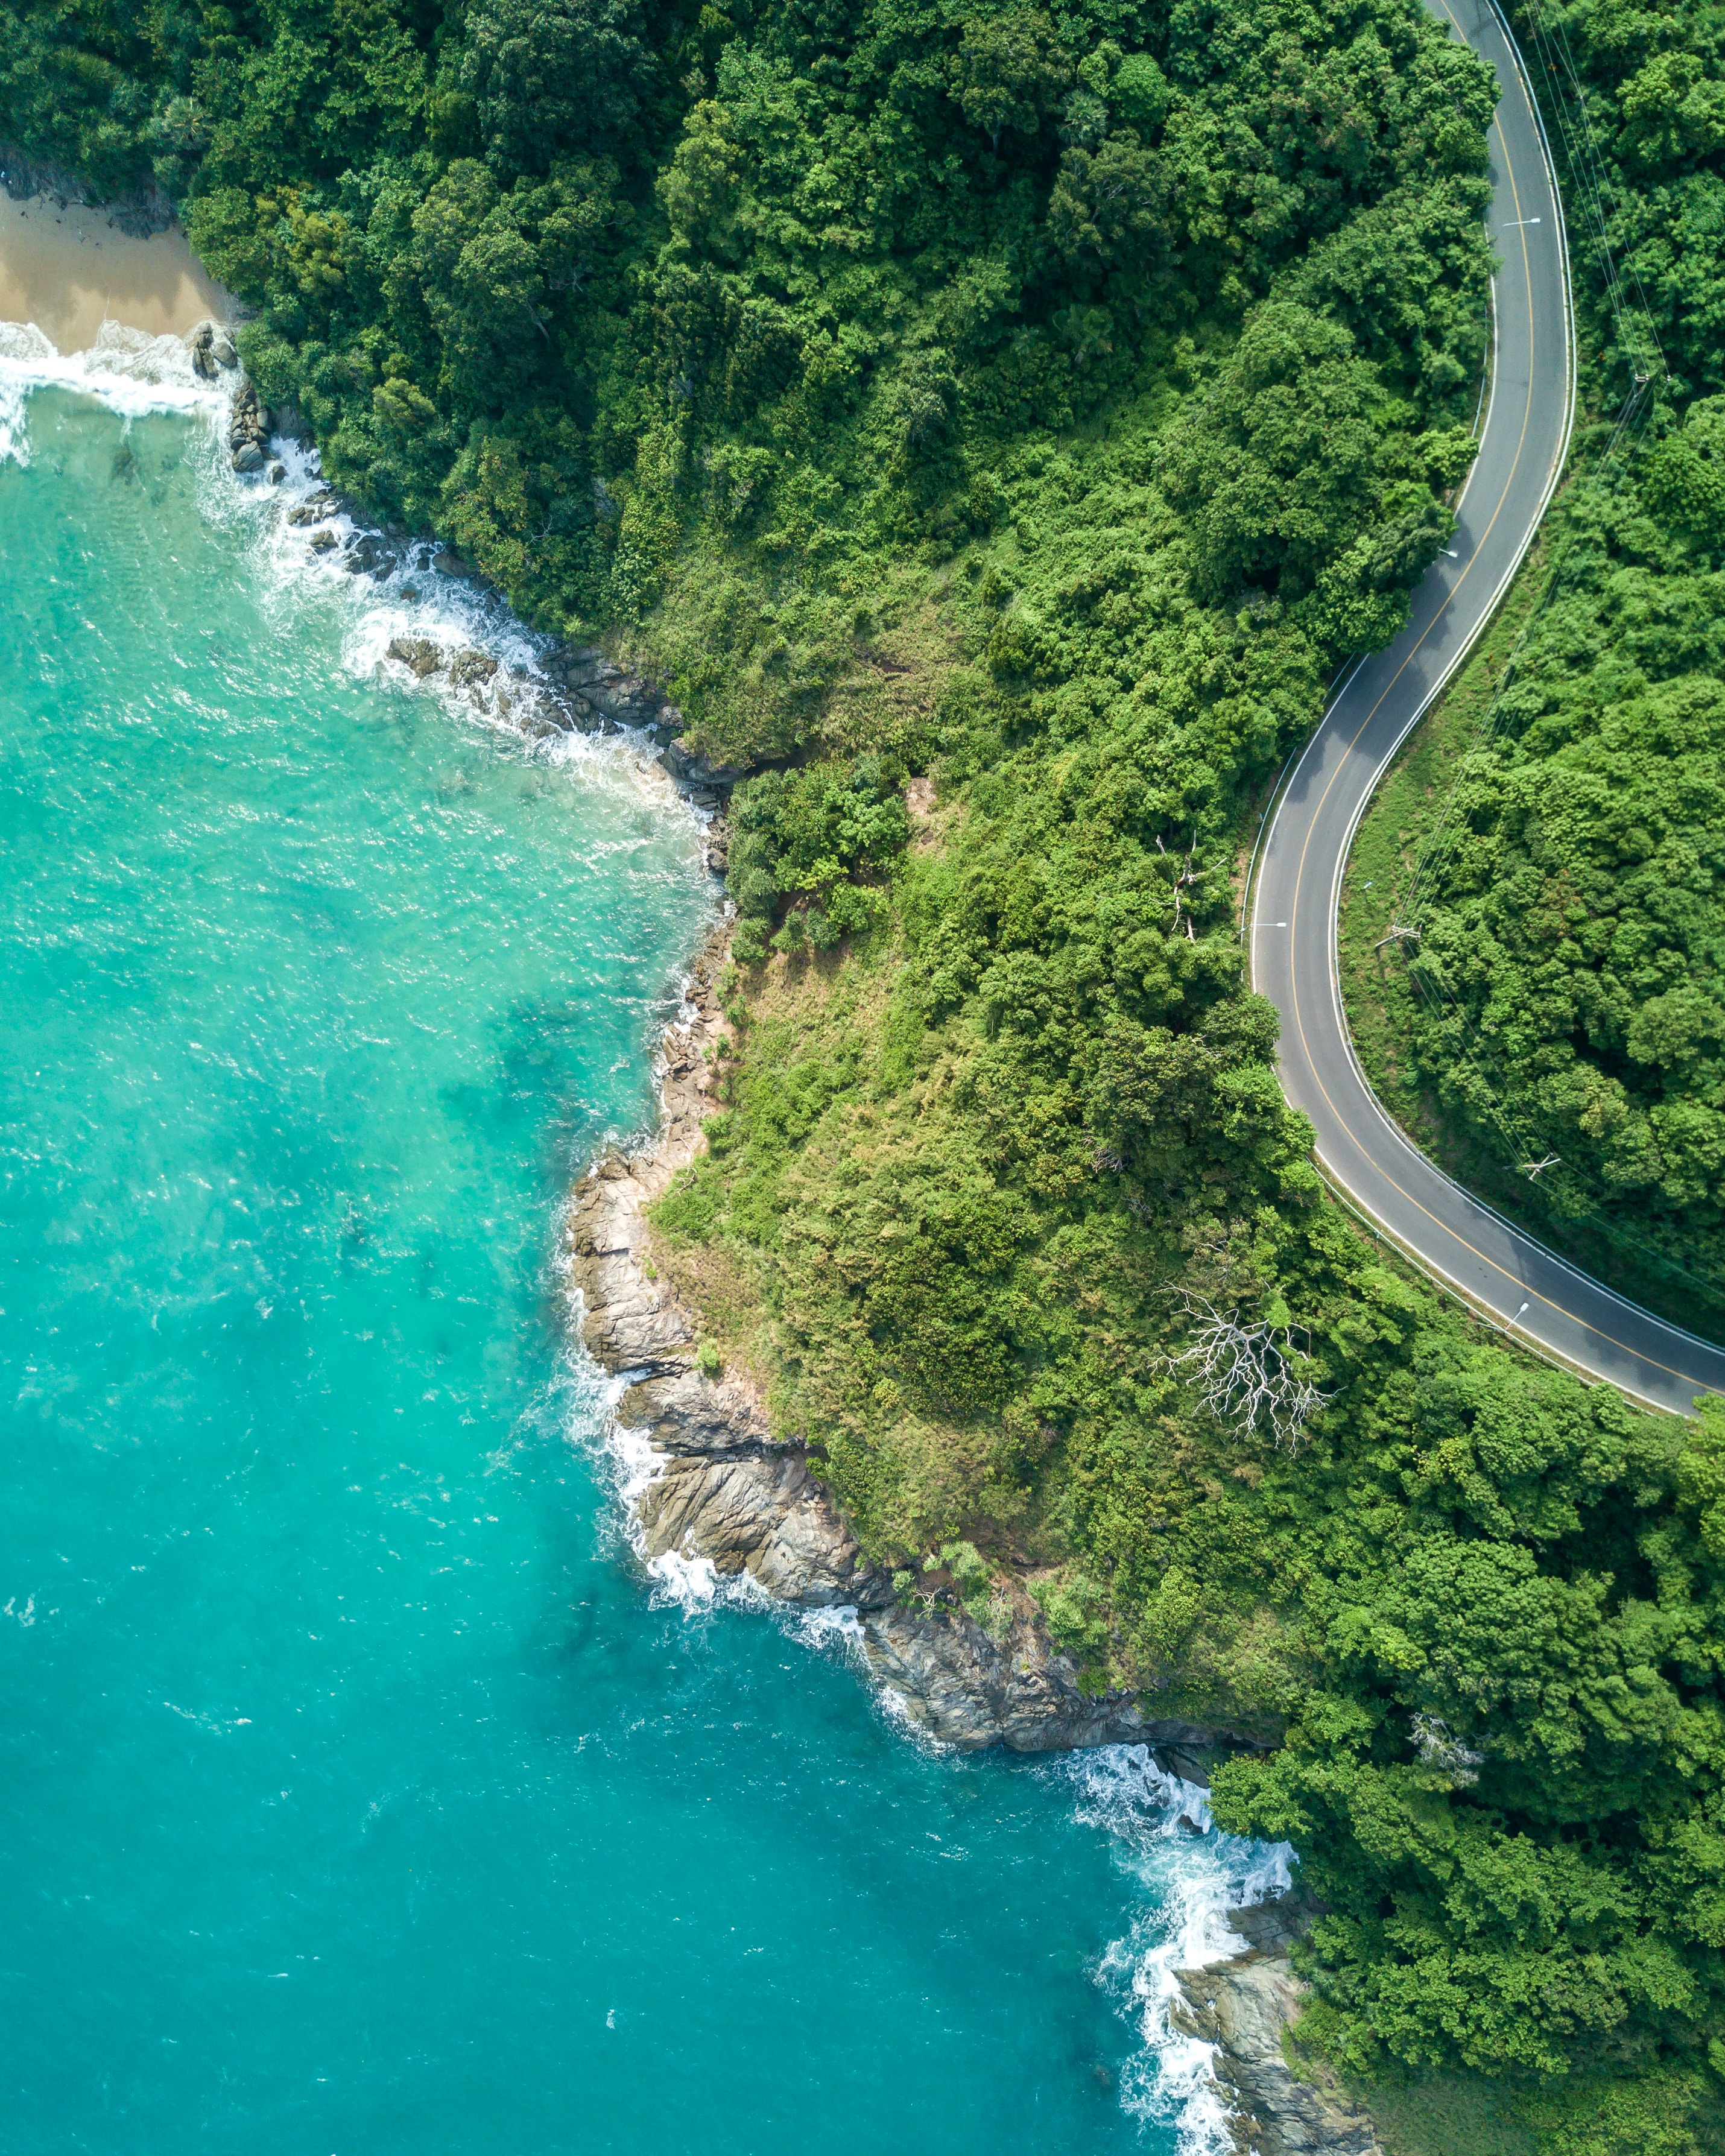 Photo depicts a winding road through lush green forest by a tropical body of water